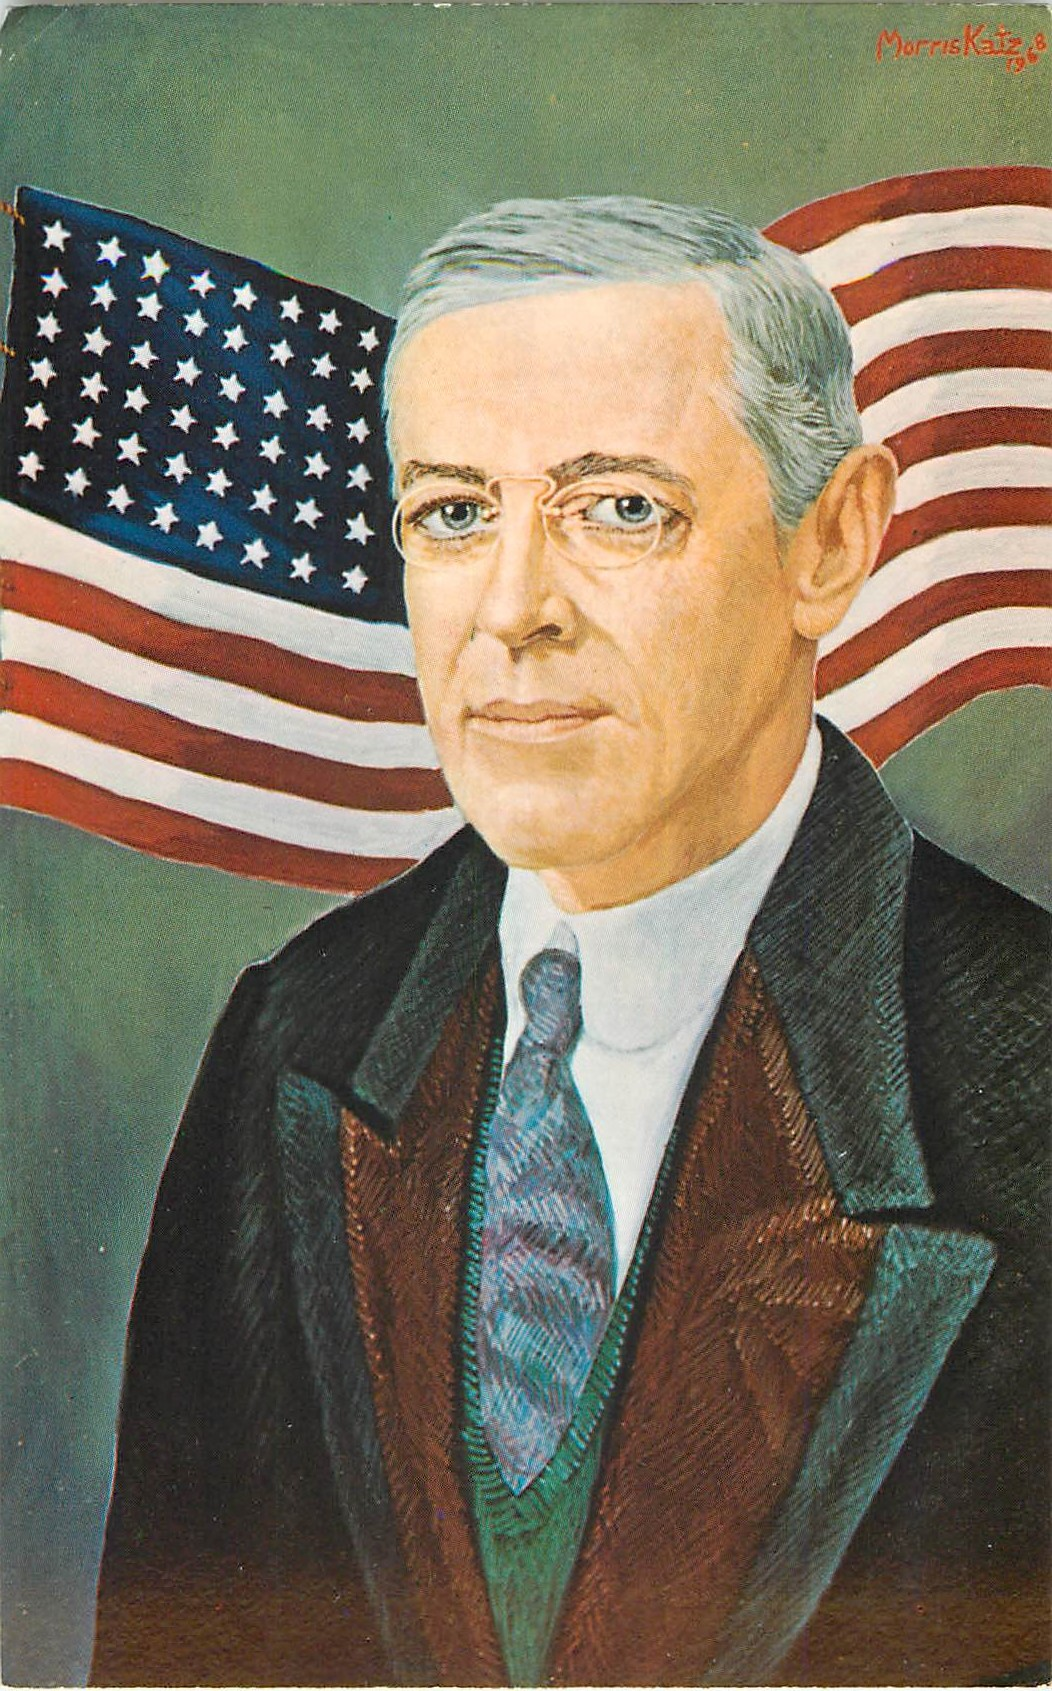 Woodrow Wilson - Painted by Morris Katz